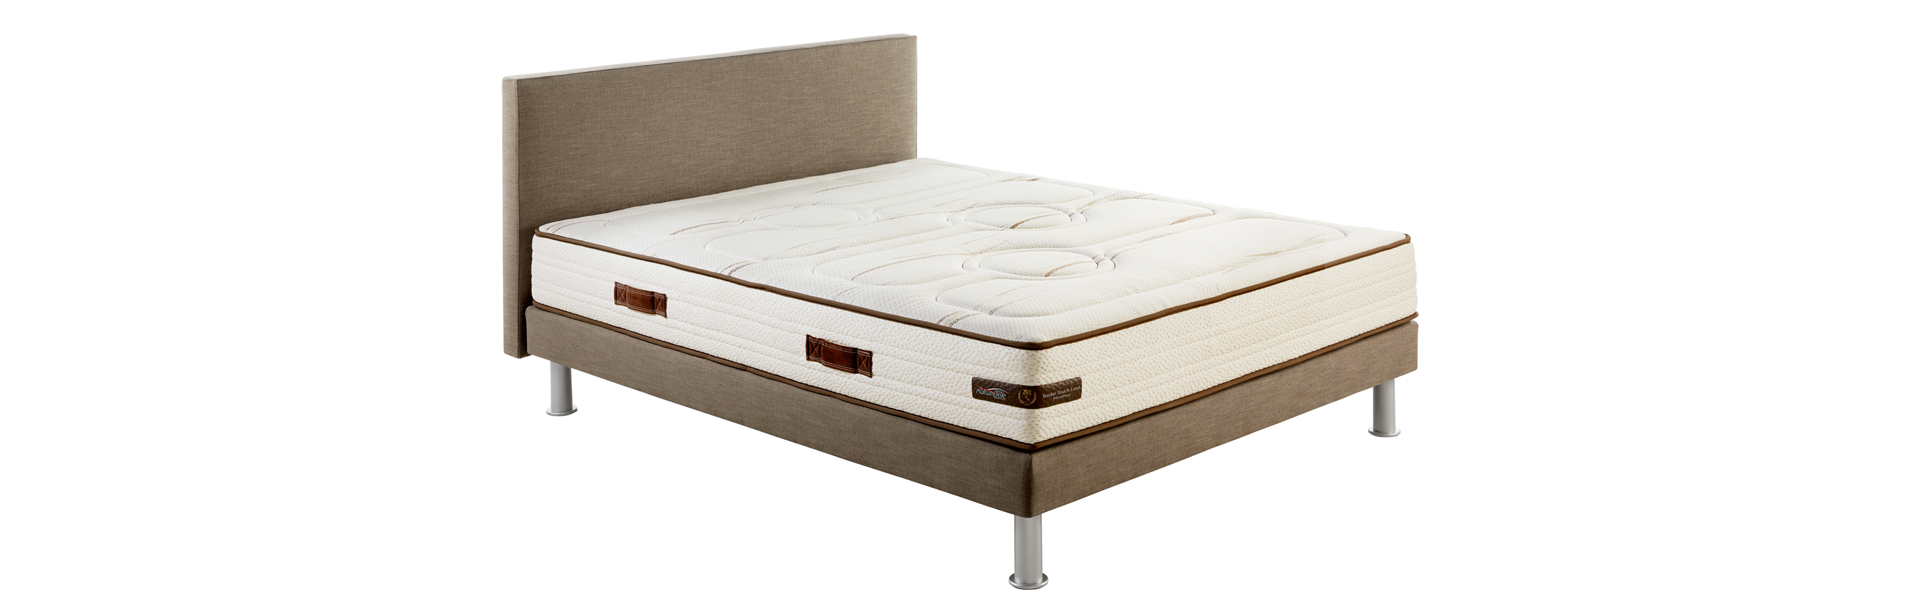 MATELAS LITERIE AUTUNOISE TENDER TOUCH LUXE